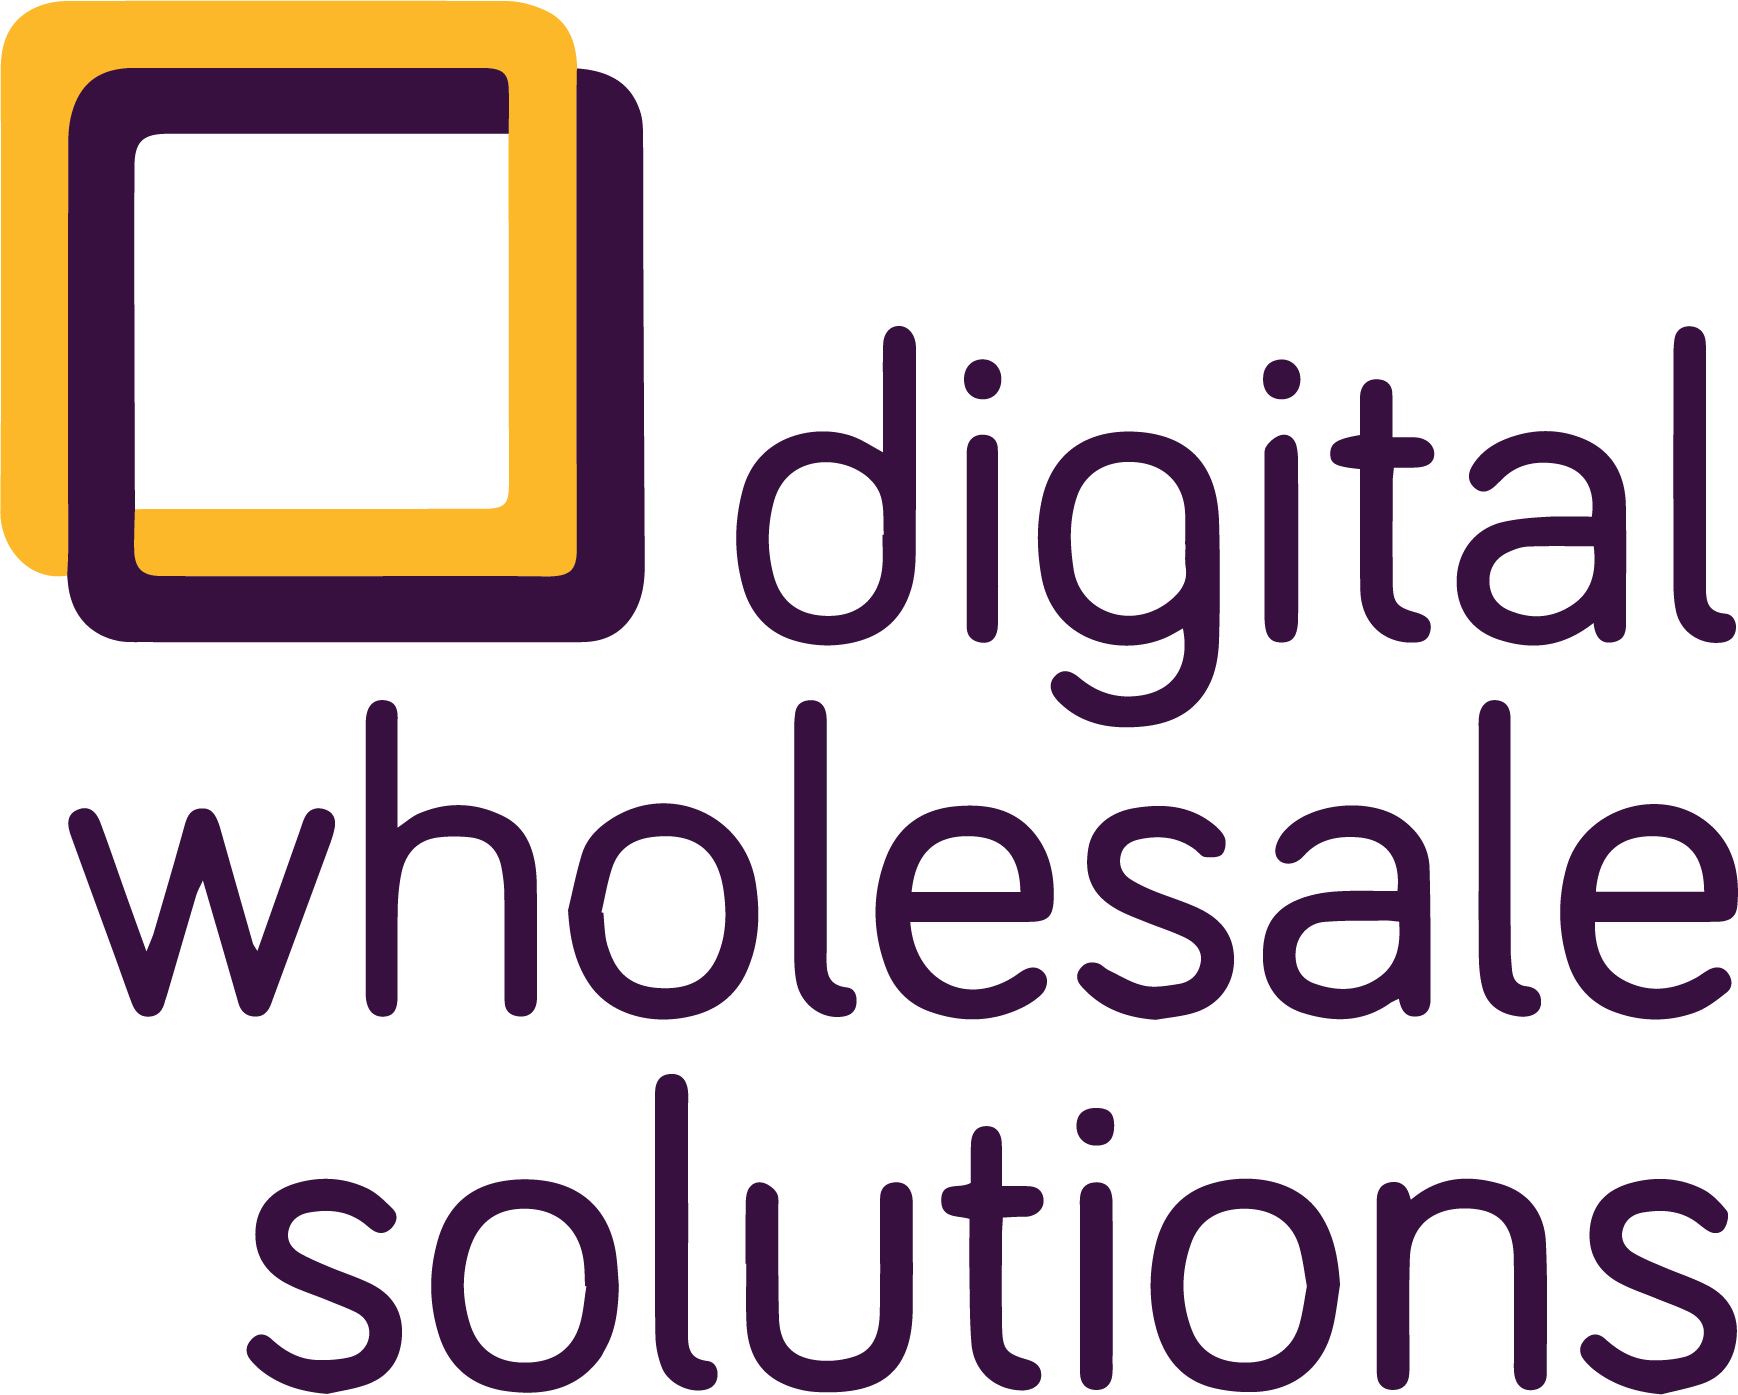 digital-wholesale-solutions-logo